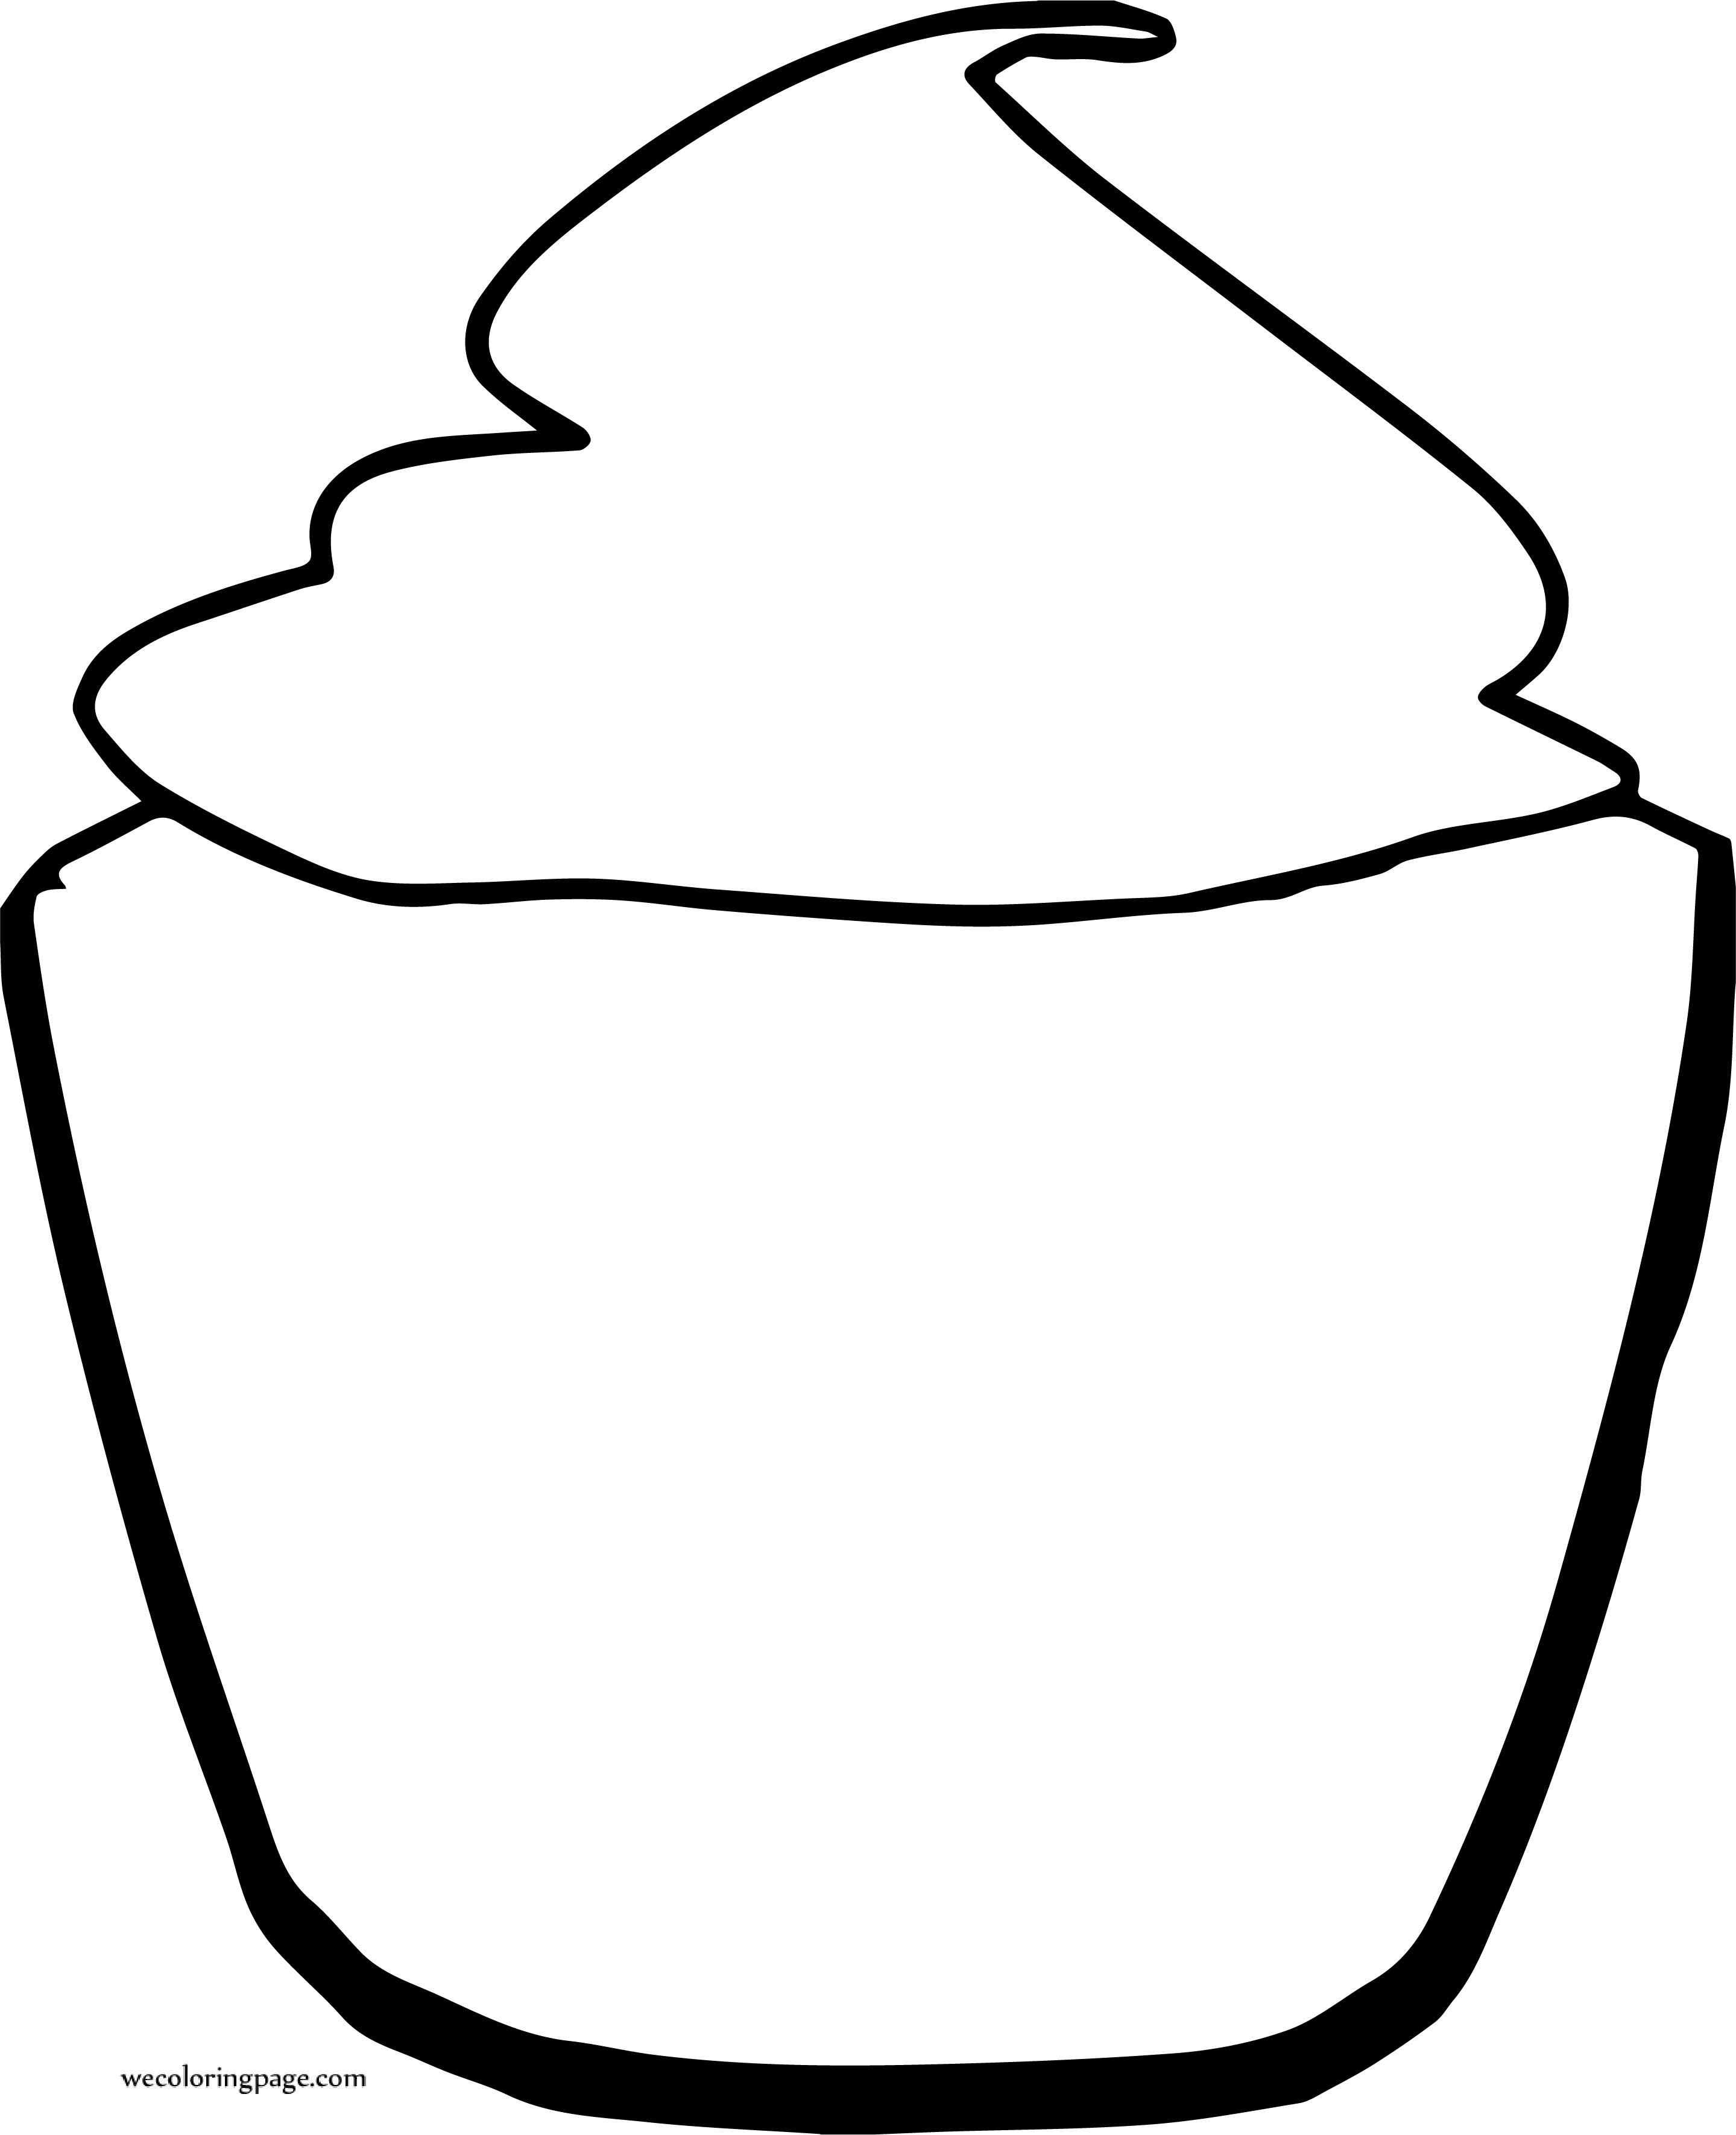 Teal Cupcake Coloring Page